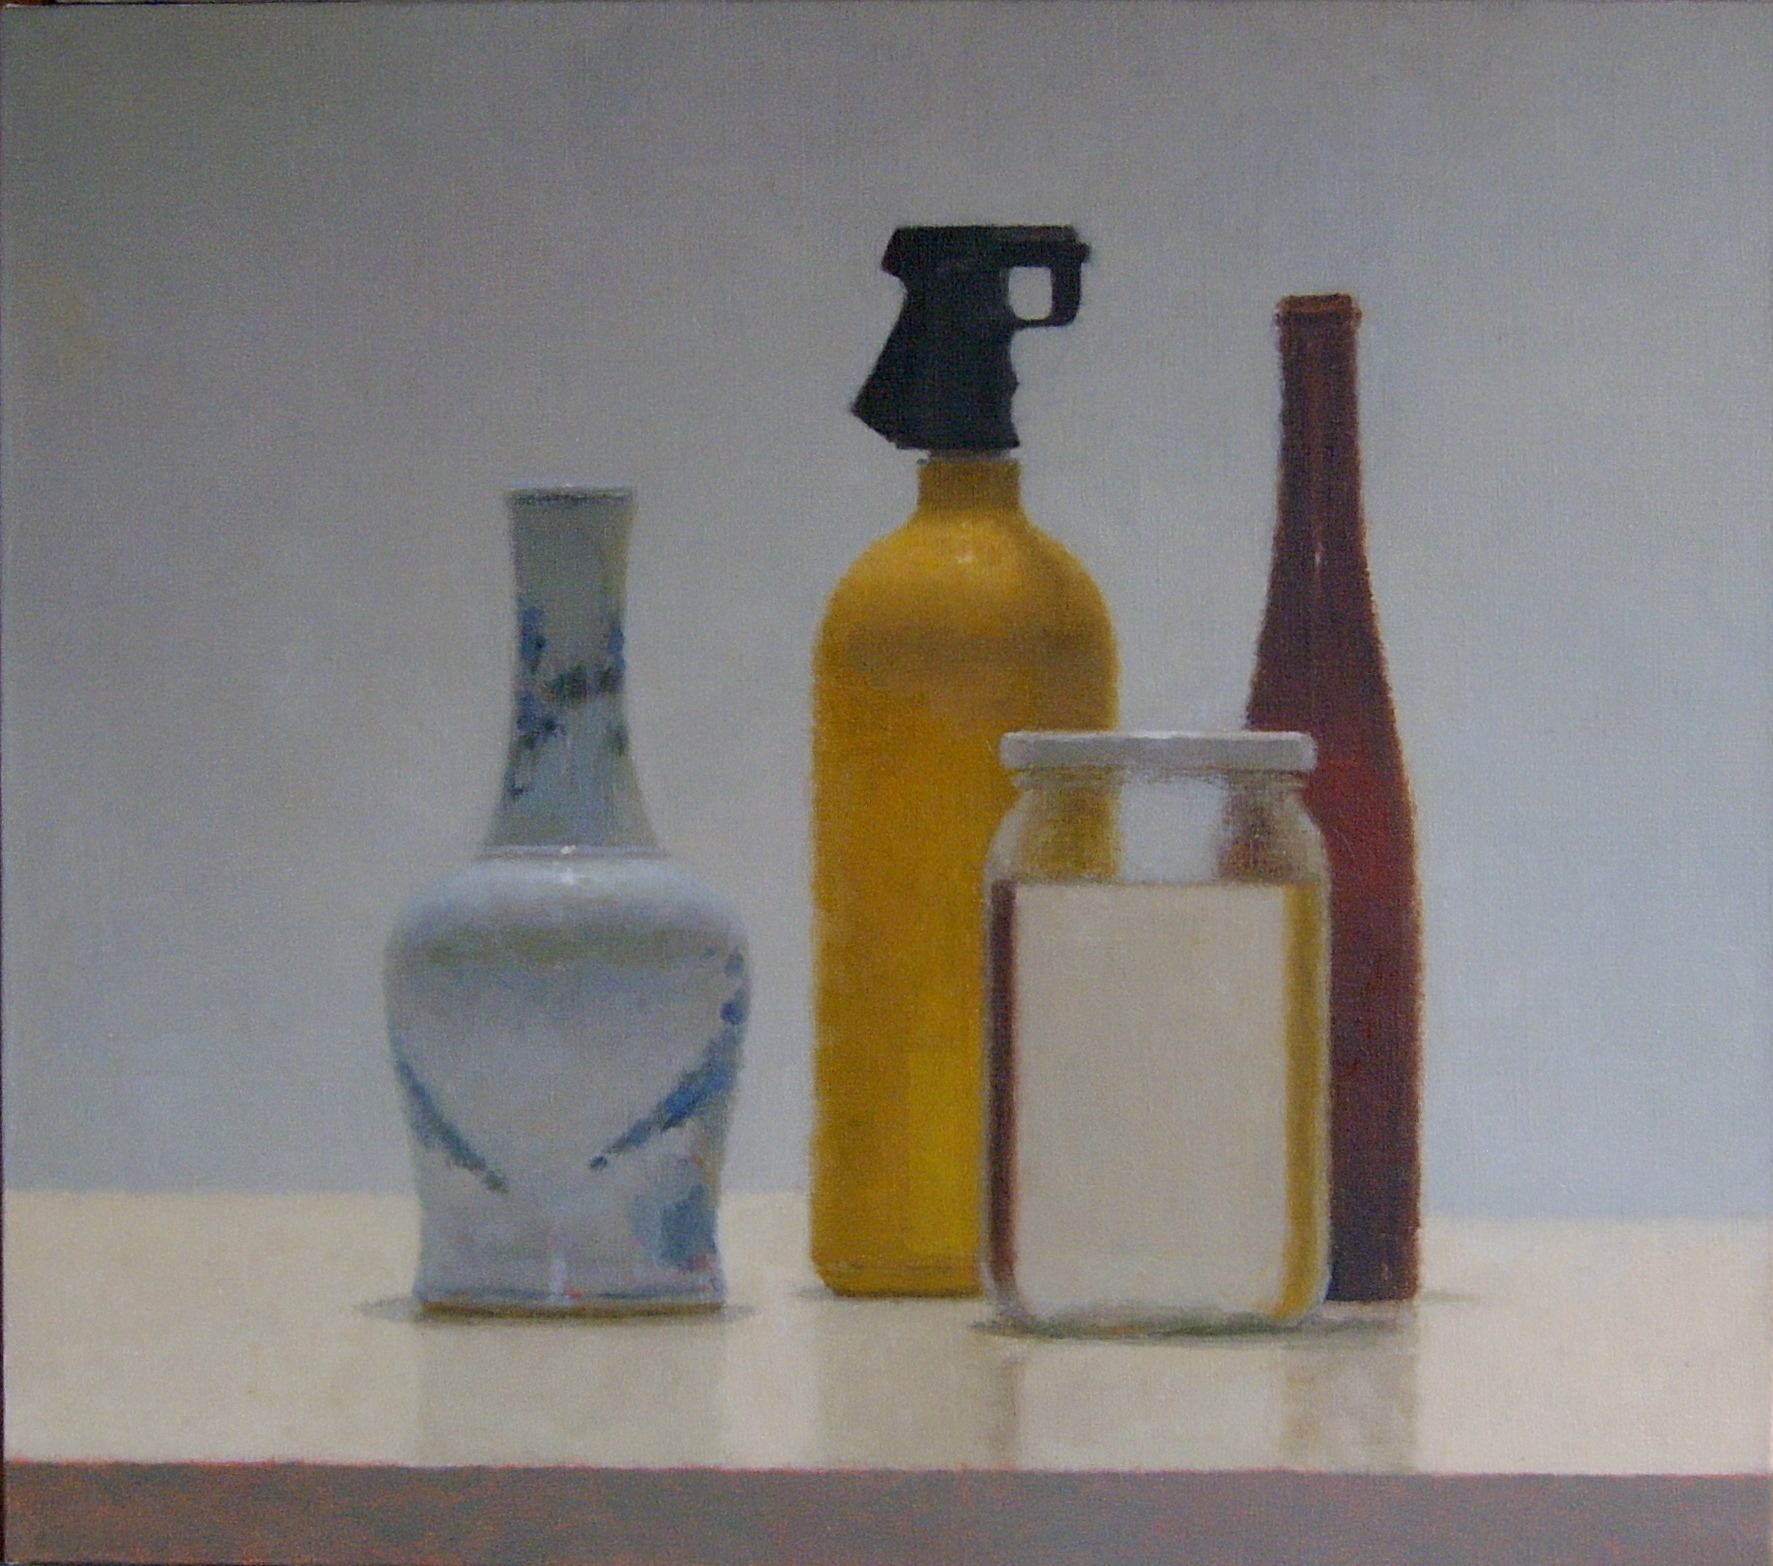 SL264, 2010, Oil on canvas, 760mm x 860mm